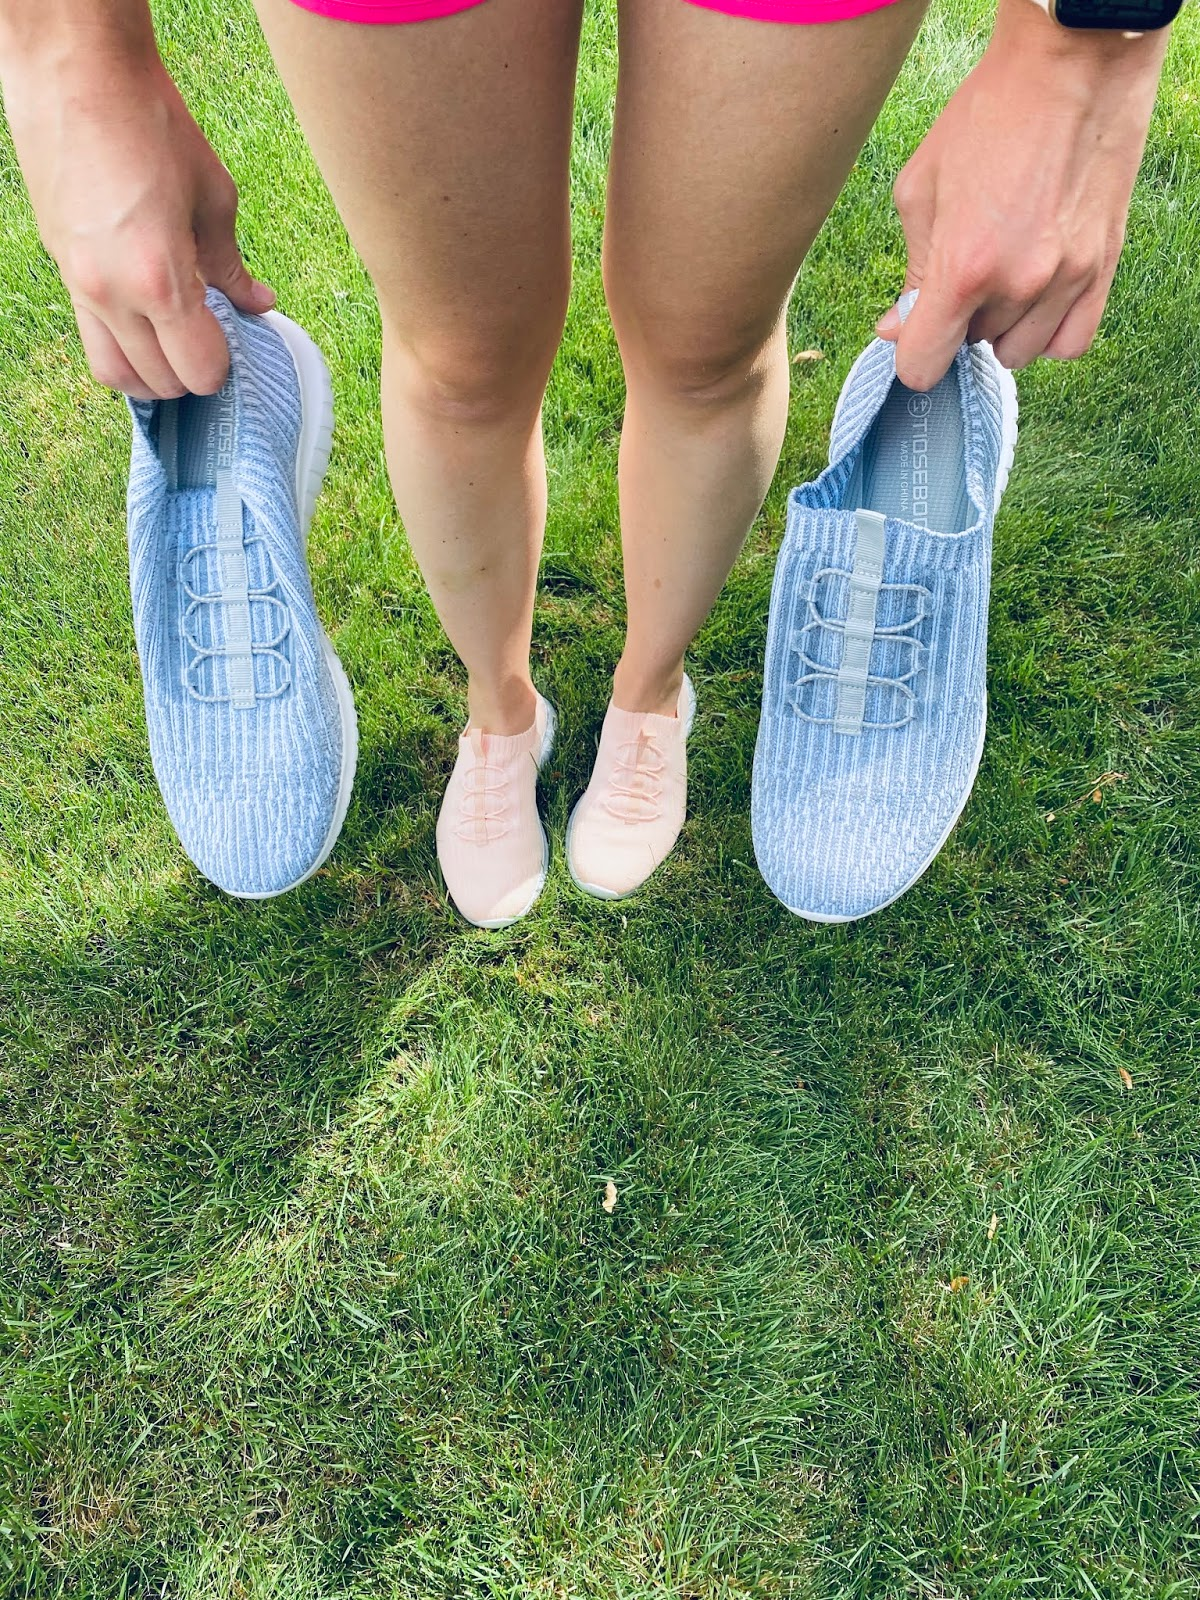 comfy shoes, cute shoes to wear while walking, cute walking shoes, grey walking shoes, love shoes, pink walking shoes, shoes, shoes for walking, tiosebon, tiosebon brand, tiosebon shoes, walking shoes,